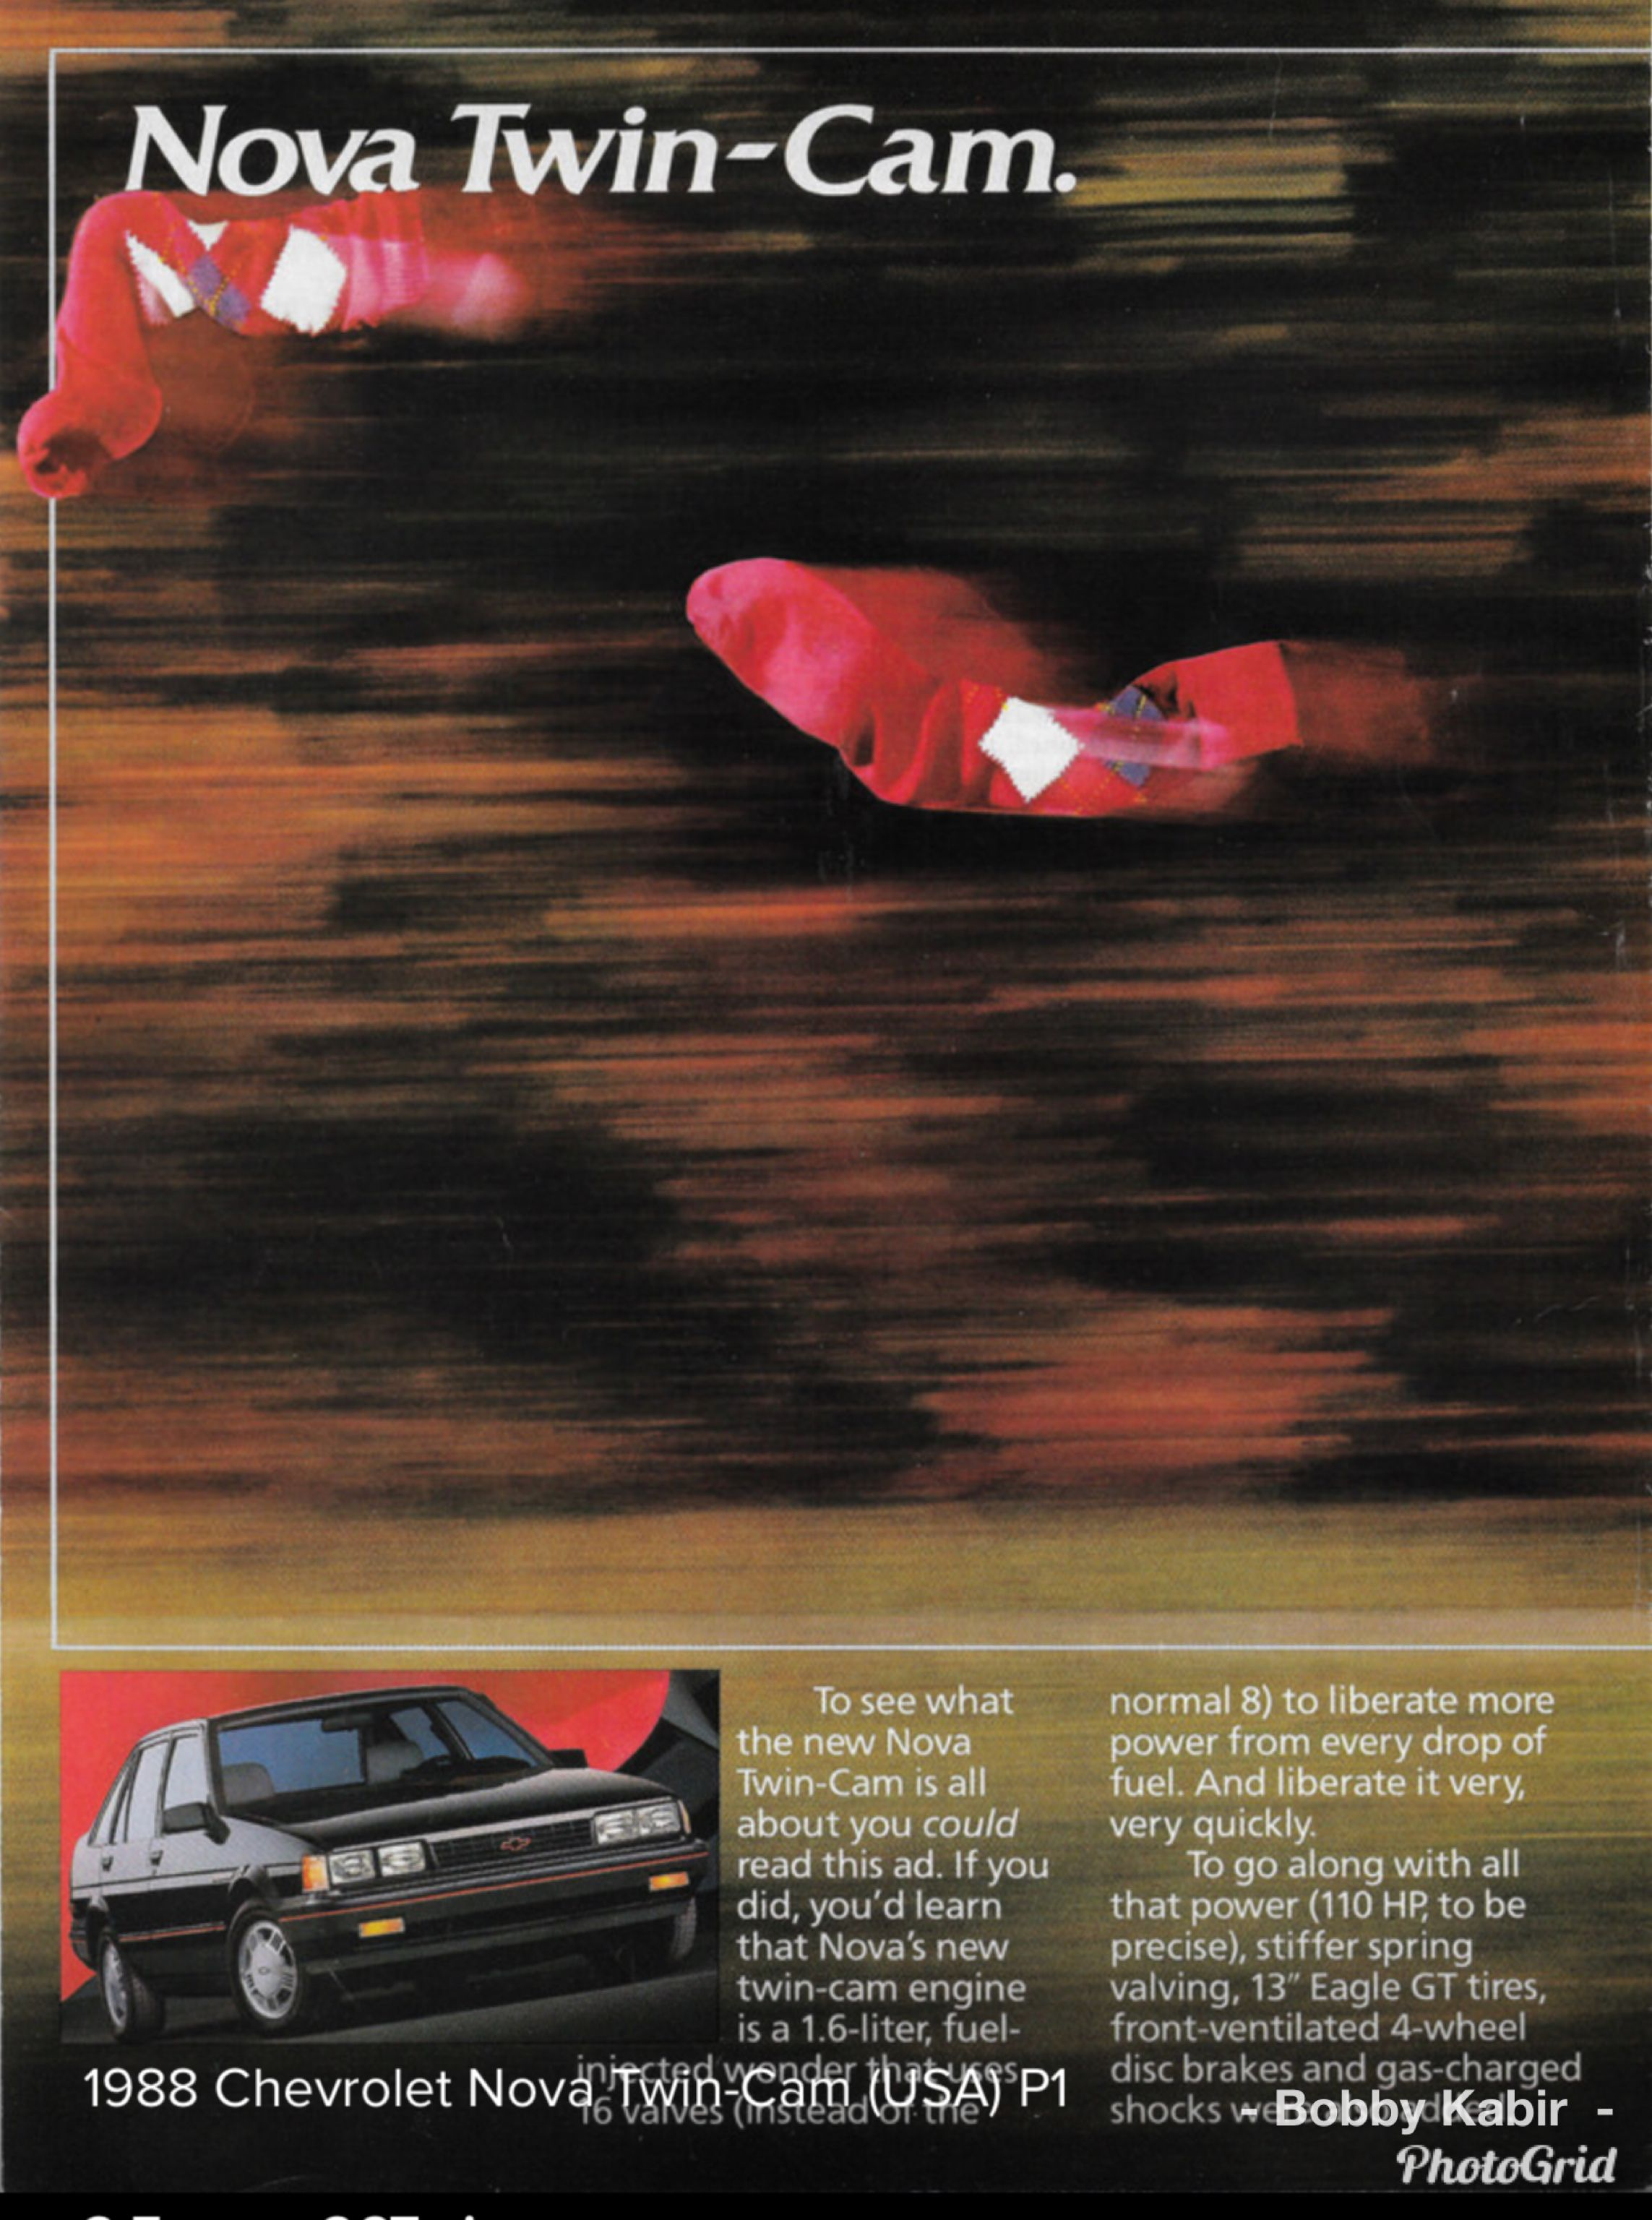 1988 Chevy Nova Twin Cam Re Badged Toyota Corolla Page O N E Of Two By Michael On Flickr Toyota Corolla Chevy Nova Car Ads